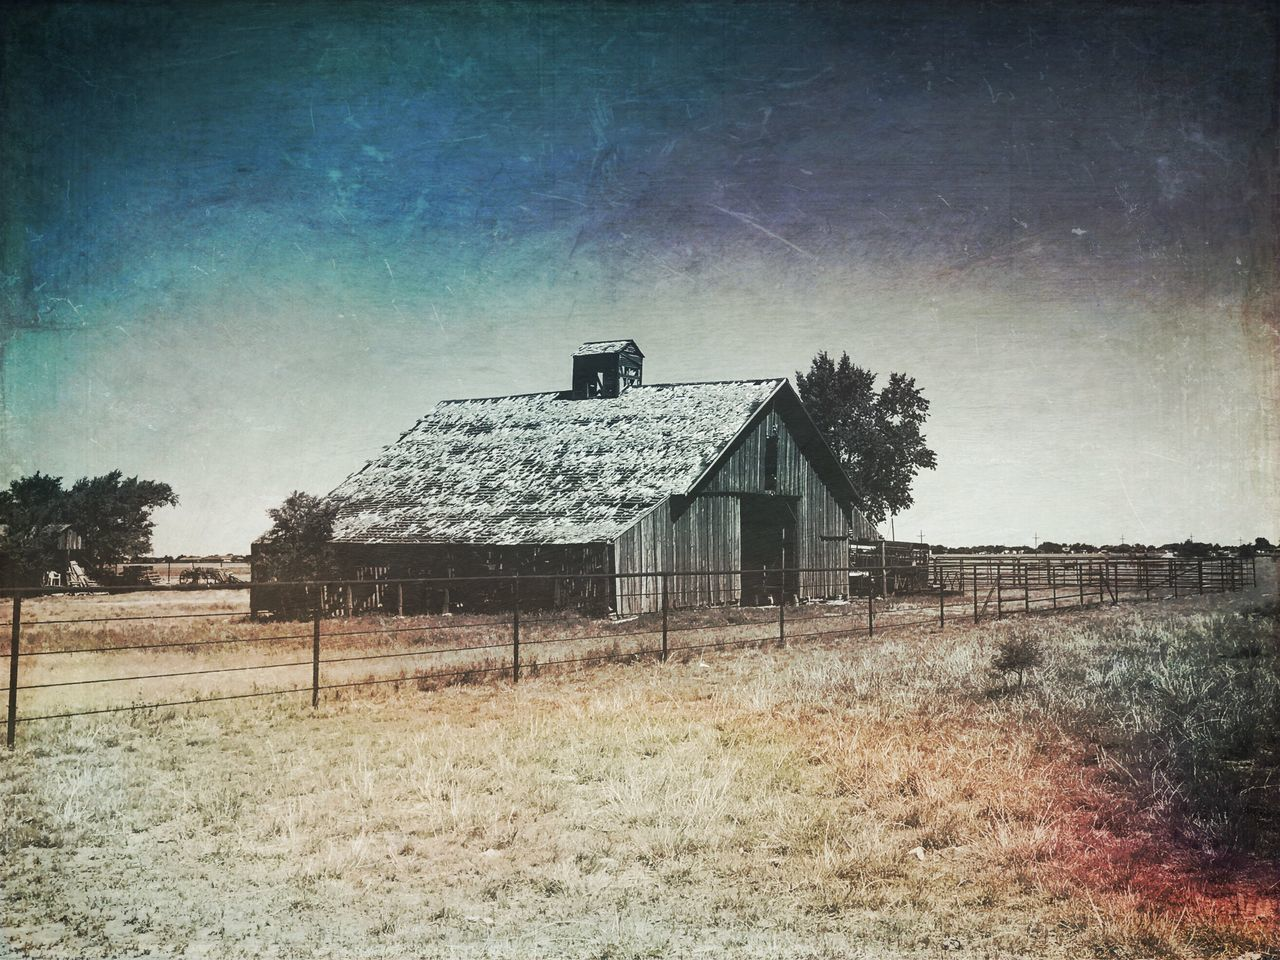 """""""West Texas History"""" An old barn sits in retirement on a ranch outside Lubbock Texas, reminding one of the rich history of ranching and farming in Texas. Architecture Built Structure Abandoned Sky Landscape Rural Scene Ranch Barn Oldbarn West Texas Texas Agriculture Historical Building"""